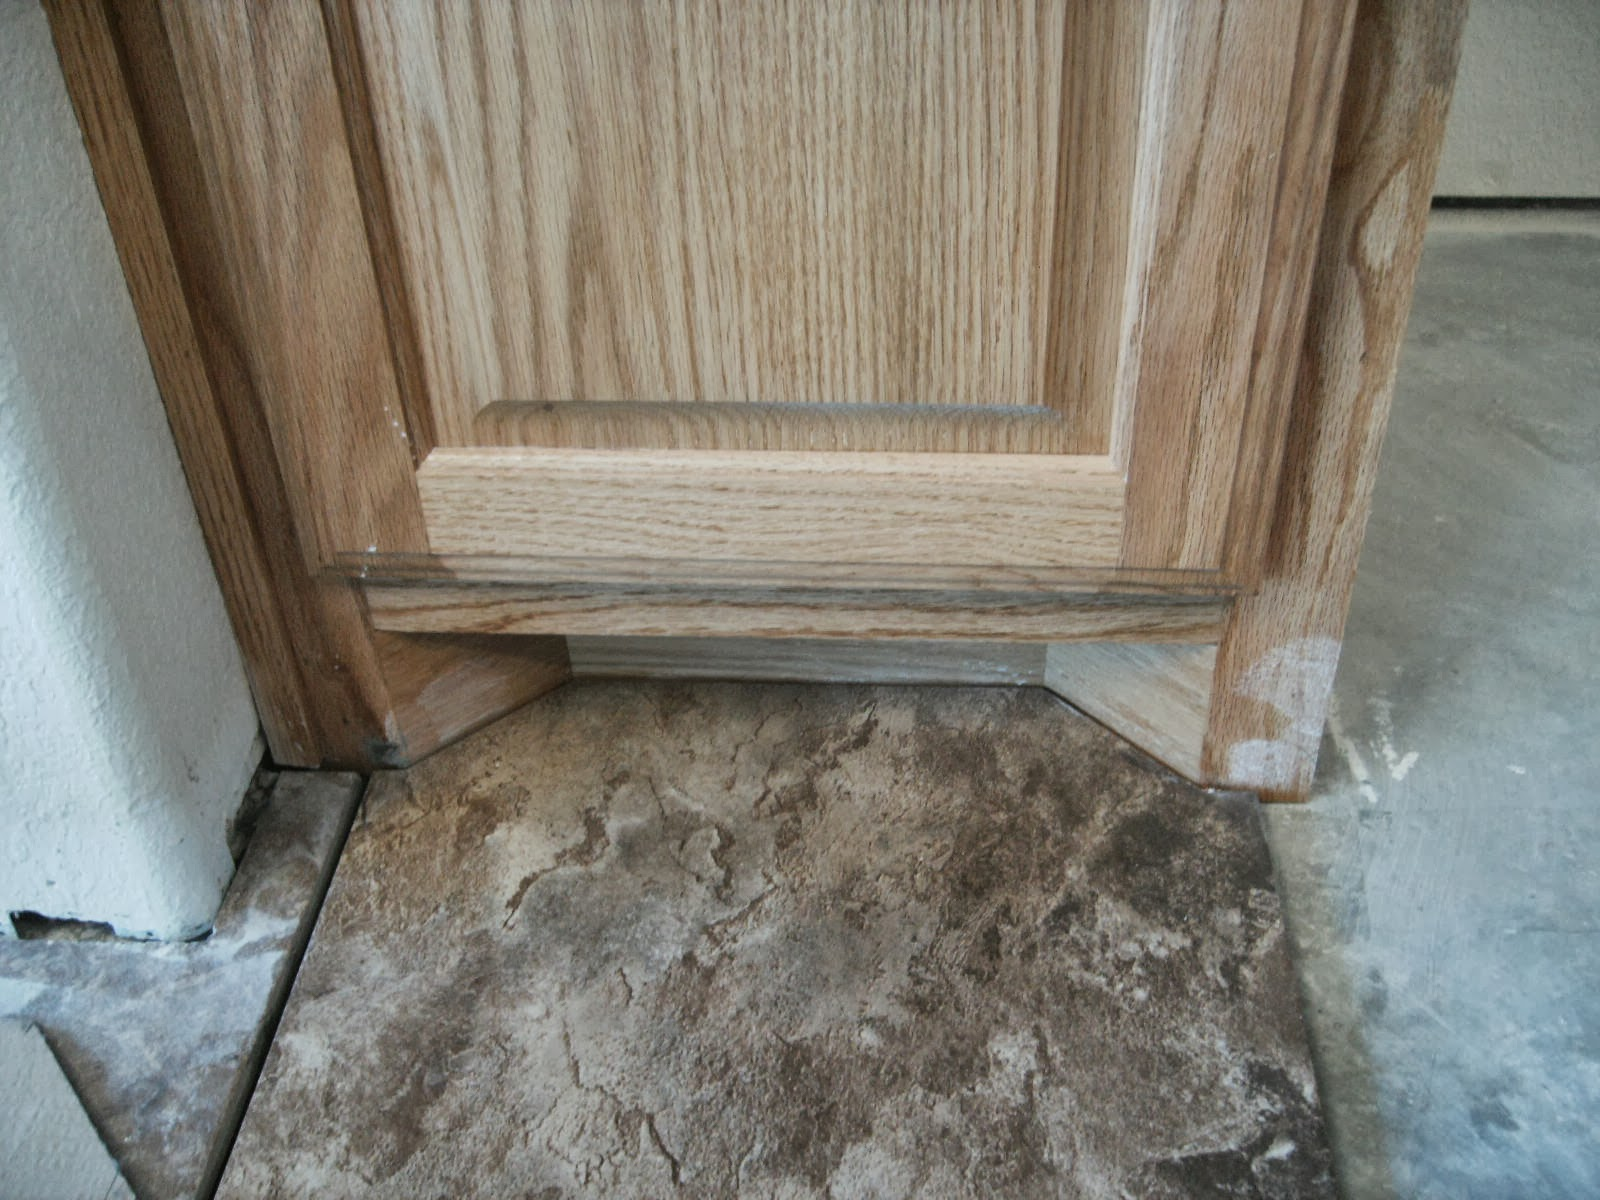 Tech tip how to make complex tile cuts confessions of a tile setter even if you undercut the jambs you still may have to remove the door trim this happens frequently when installing laminate flooring dailygadgetfo Gallery